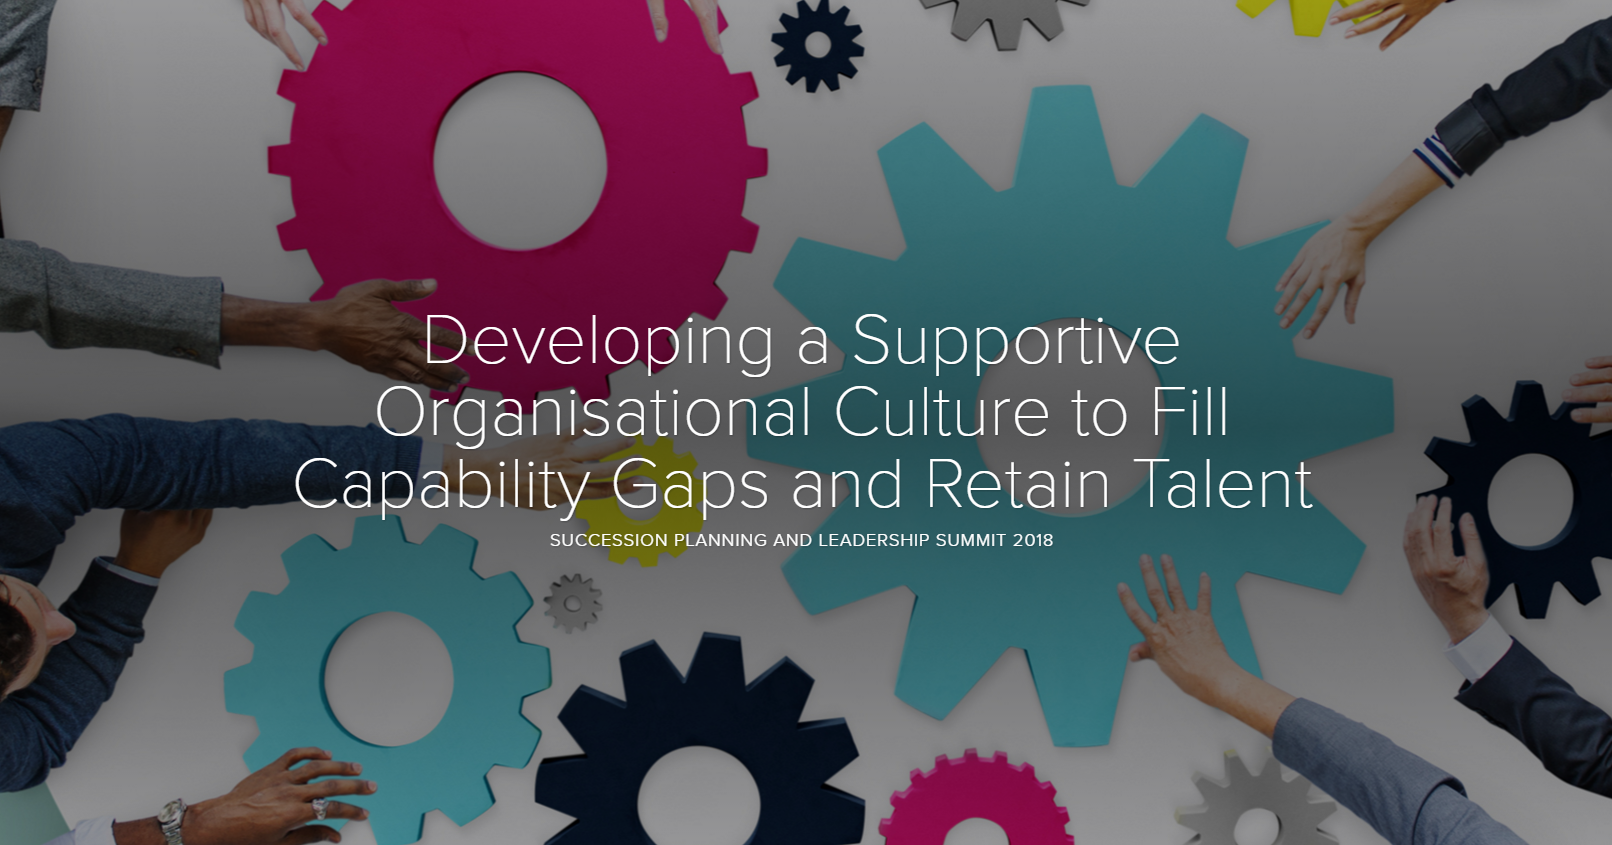 Developing a Supportive Organisational Culture to Fill Capability Gaps and Retain Talent